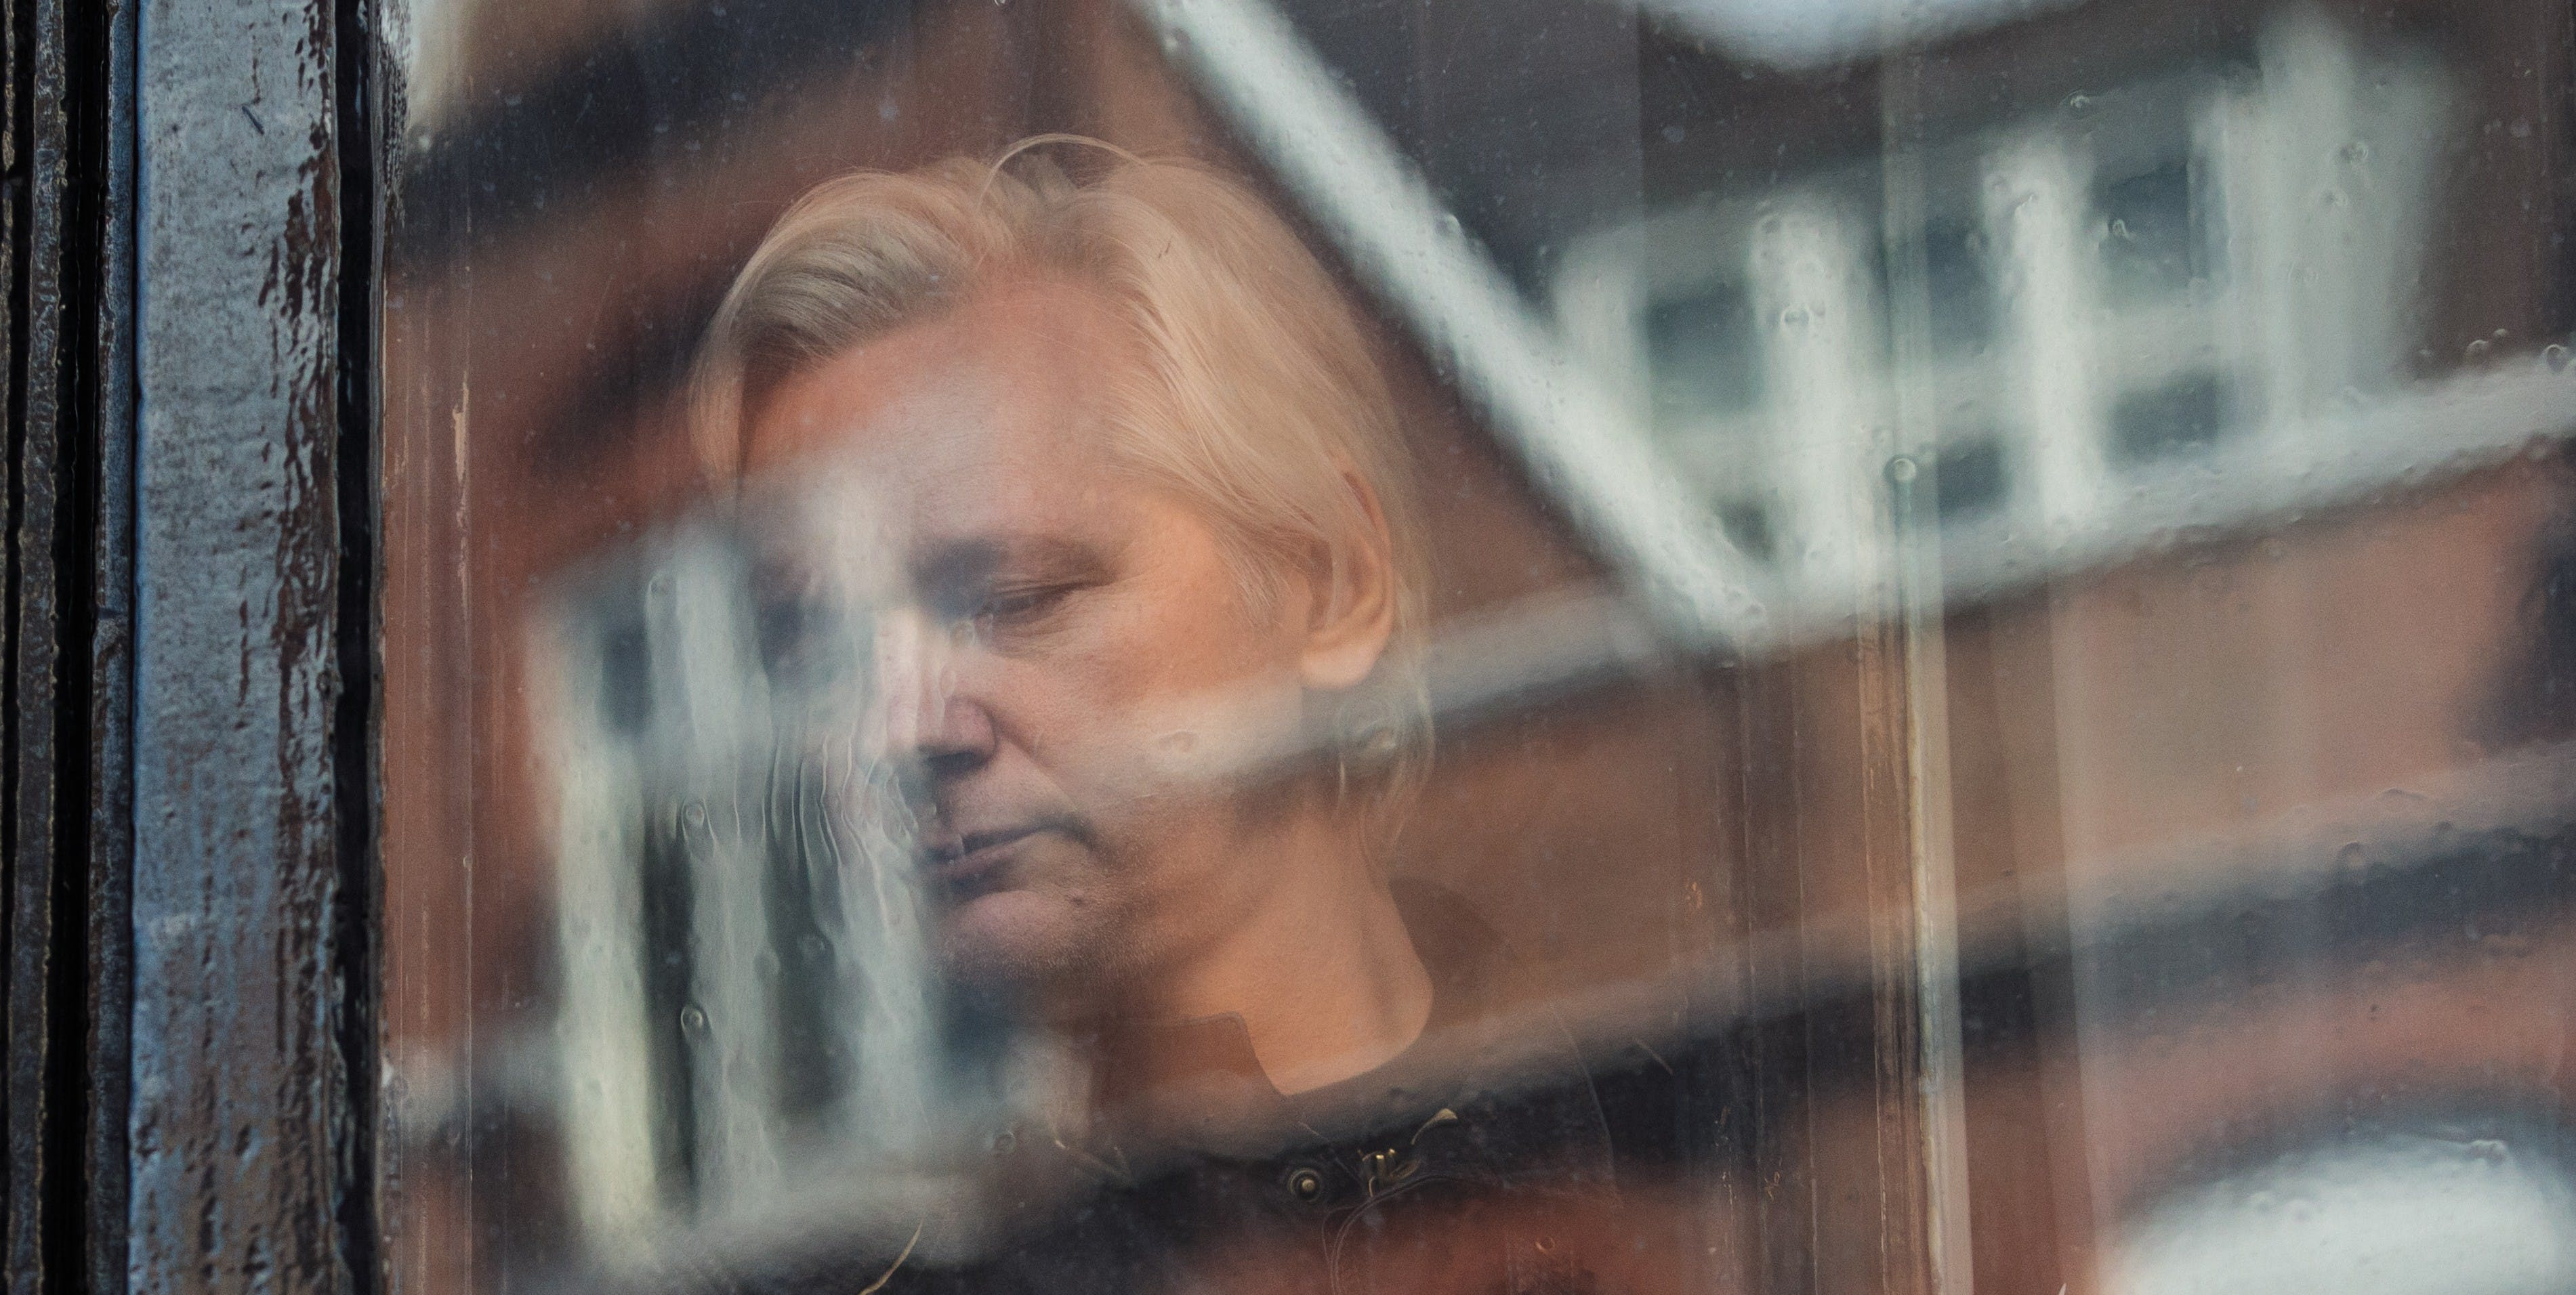 Julian Assange Languishes in Prison as His Journalistic Collaborators Brandish Their Prizes